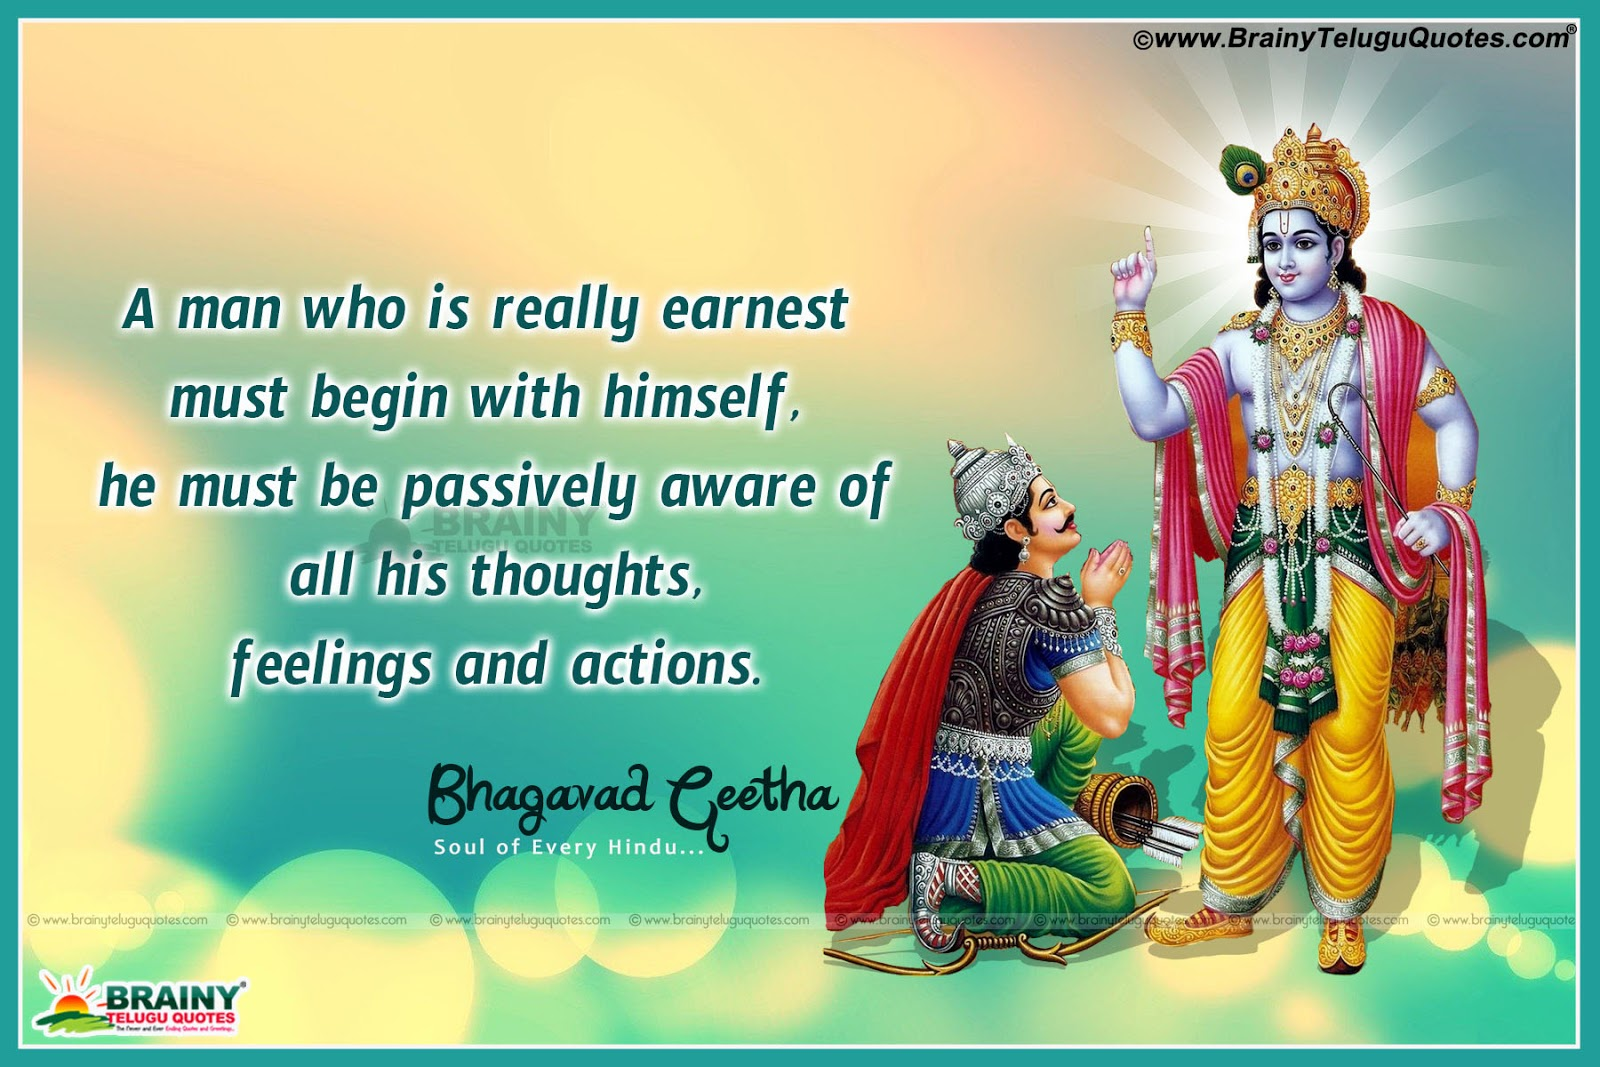 Bhagavad Gita Quotes In Tamil Wallpaper Download Geeta Quotes Wallpaper Gallery